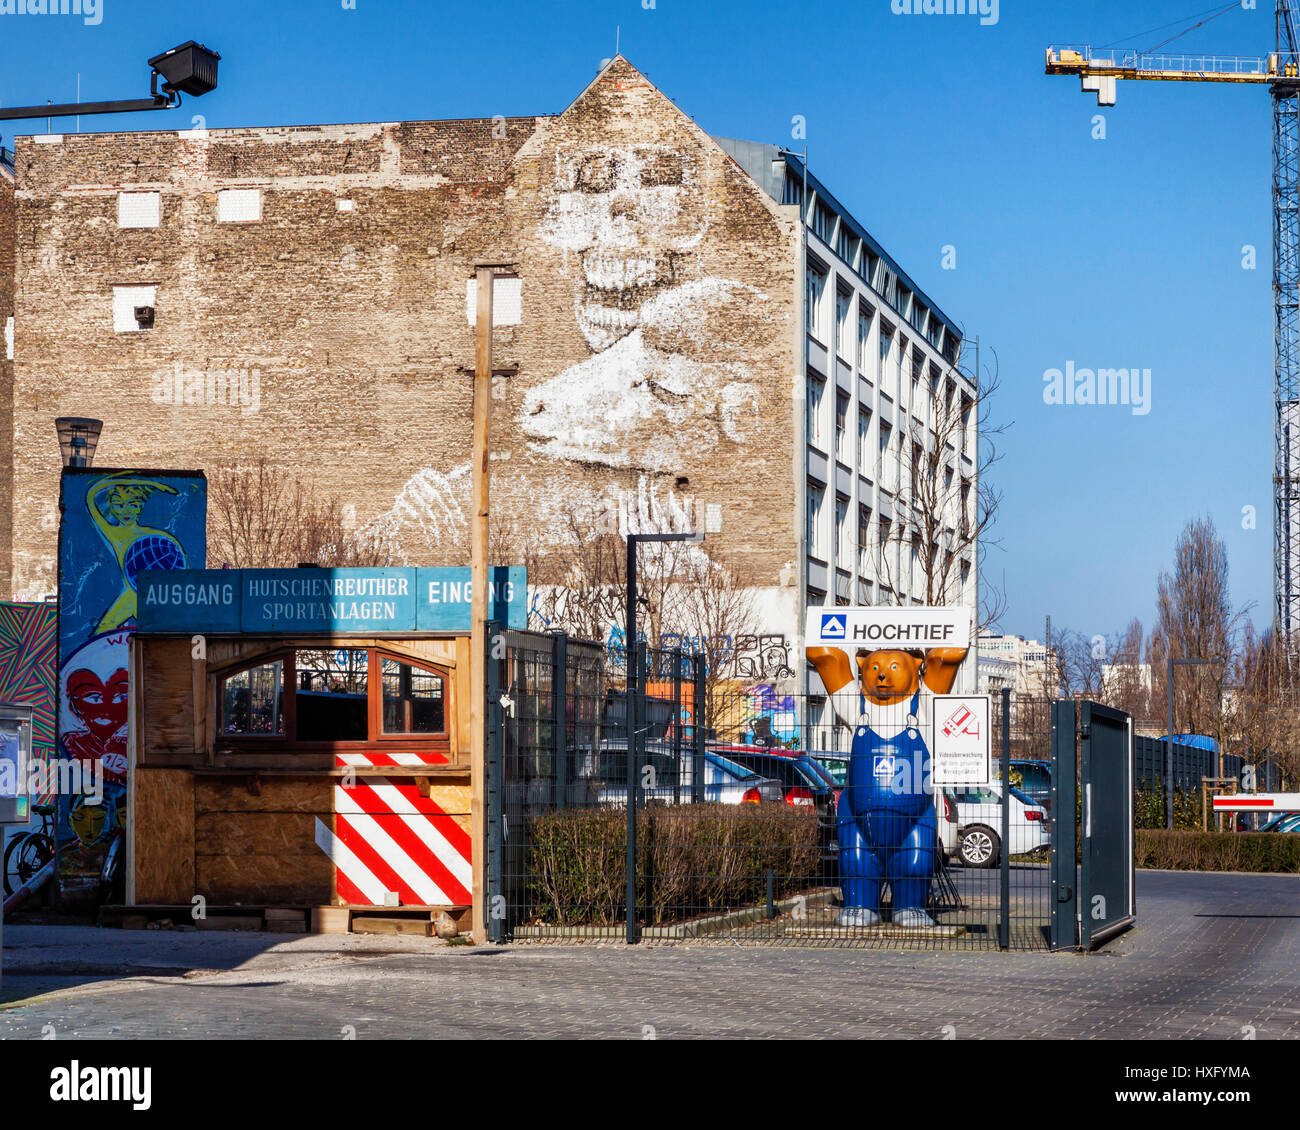 Berlin building with mural street art,skull ,skeleton and sheep and Berlin Buddy bear - Stock Image